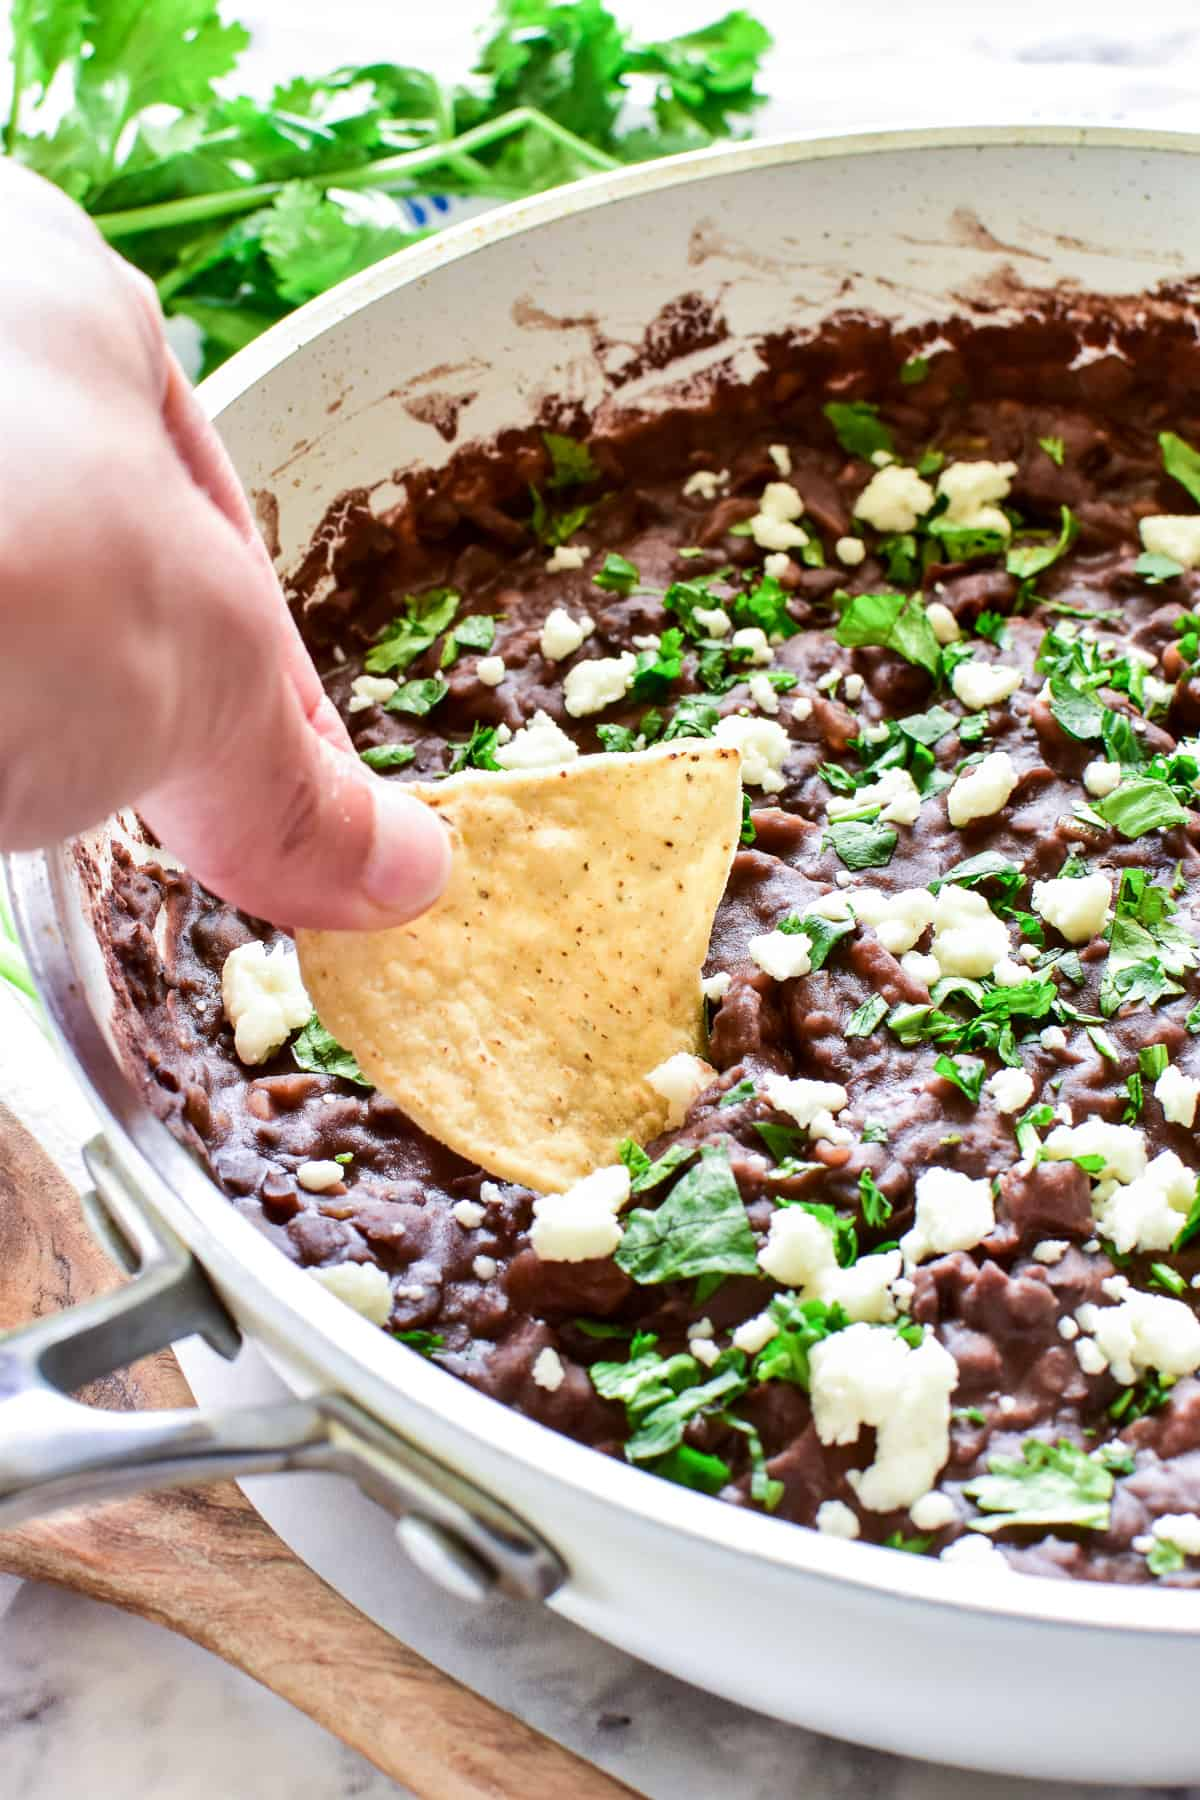 Dipping a chip into Refried Black Beans